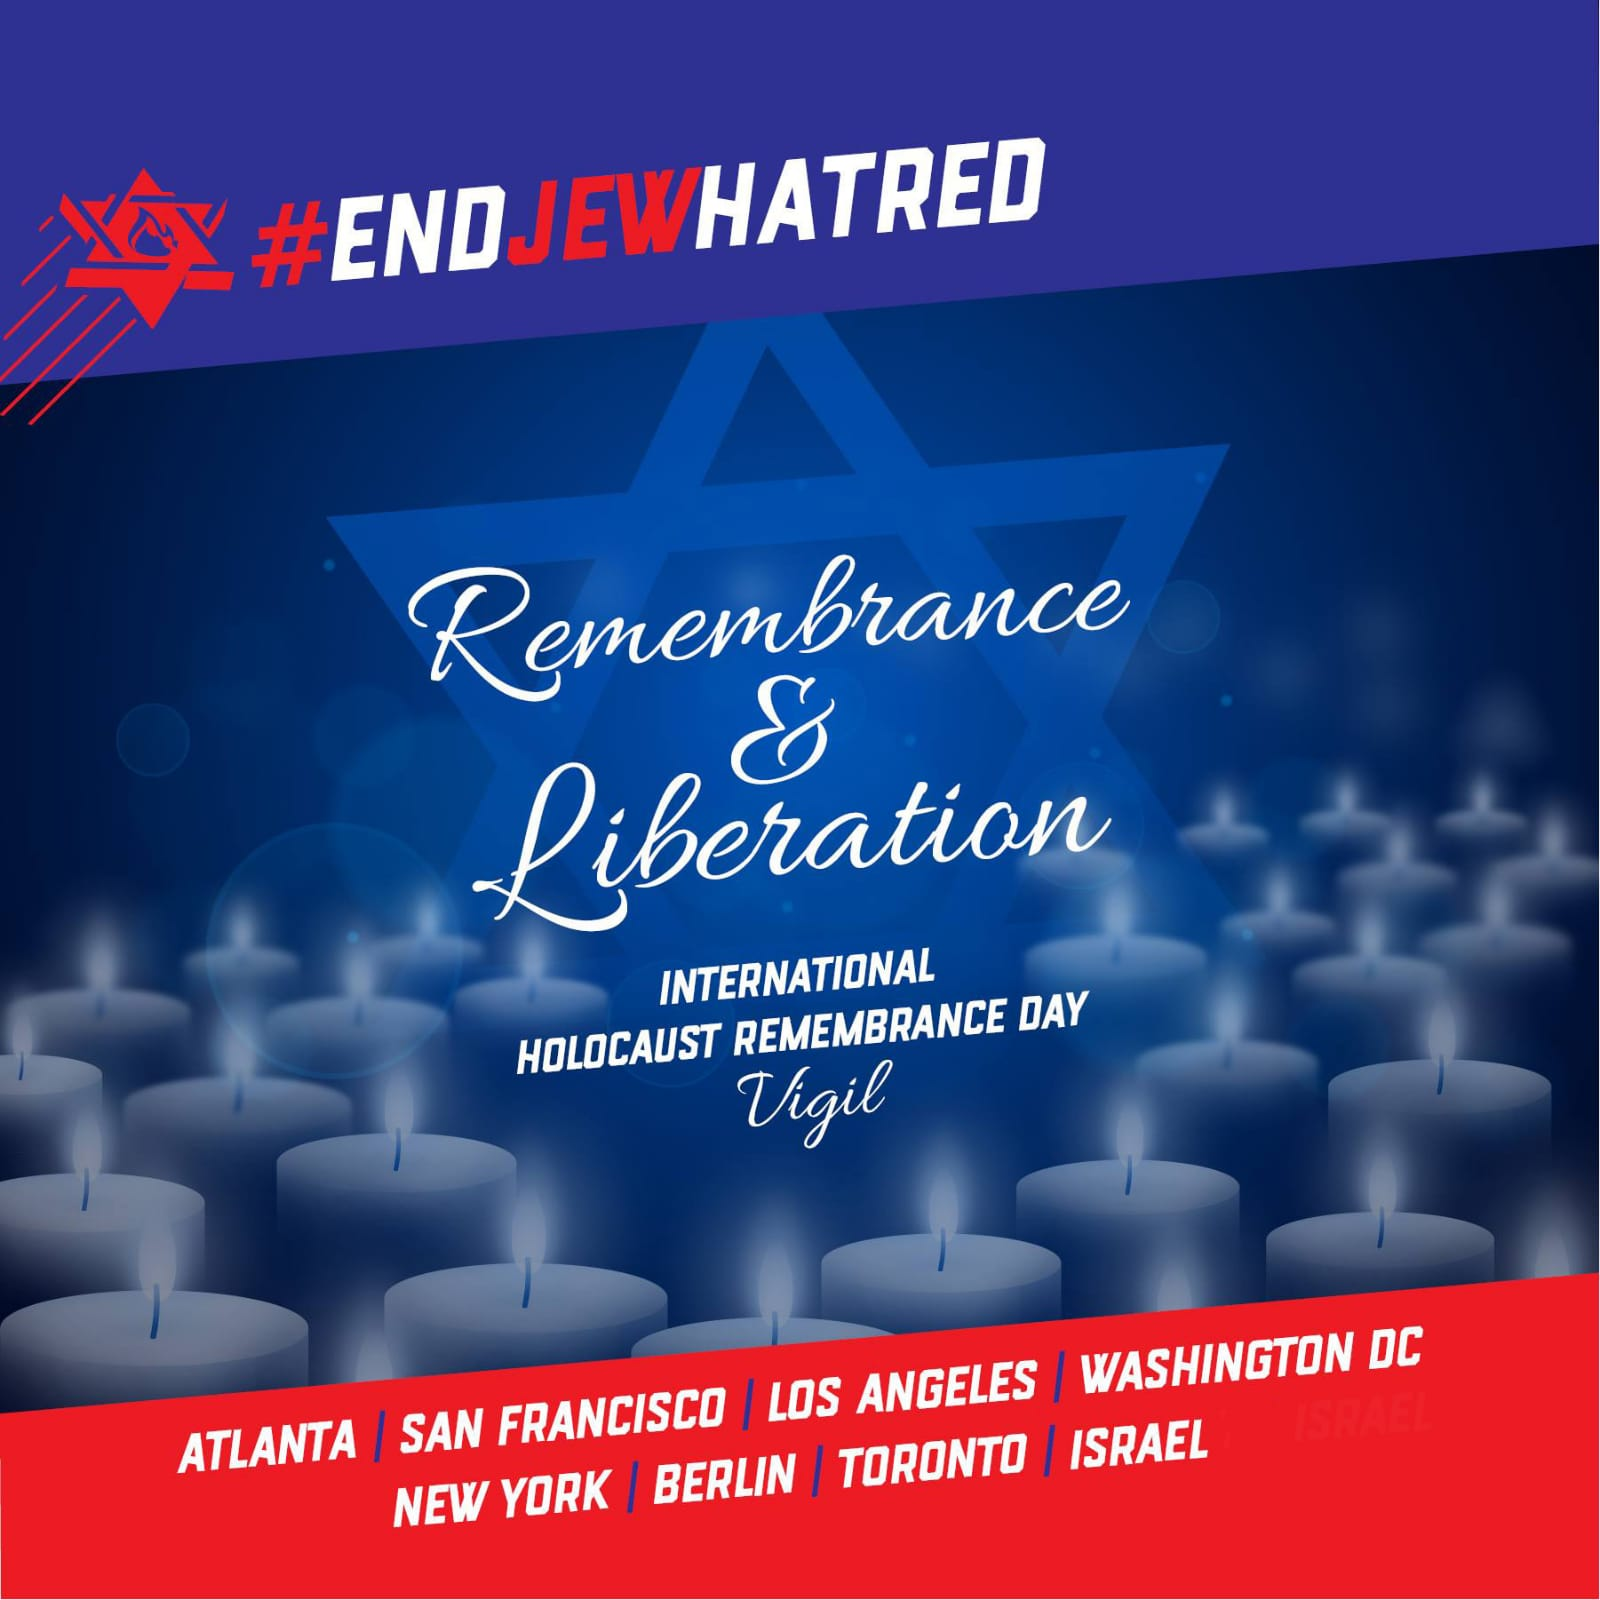 End Jew Hatred asks all supporters to join our online vigil this International Holocaust Remembrance Day